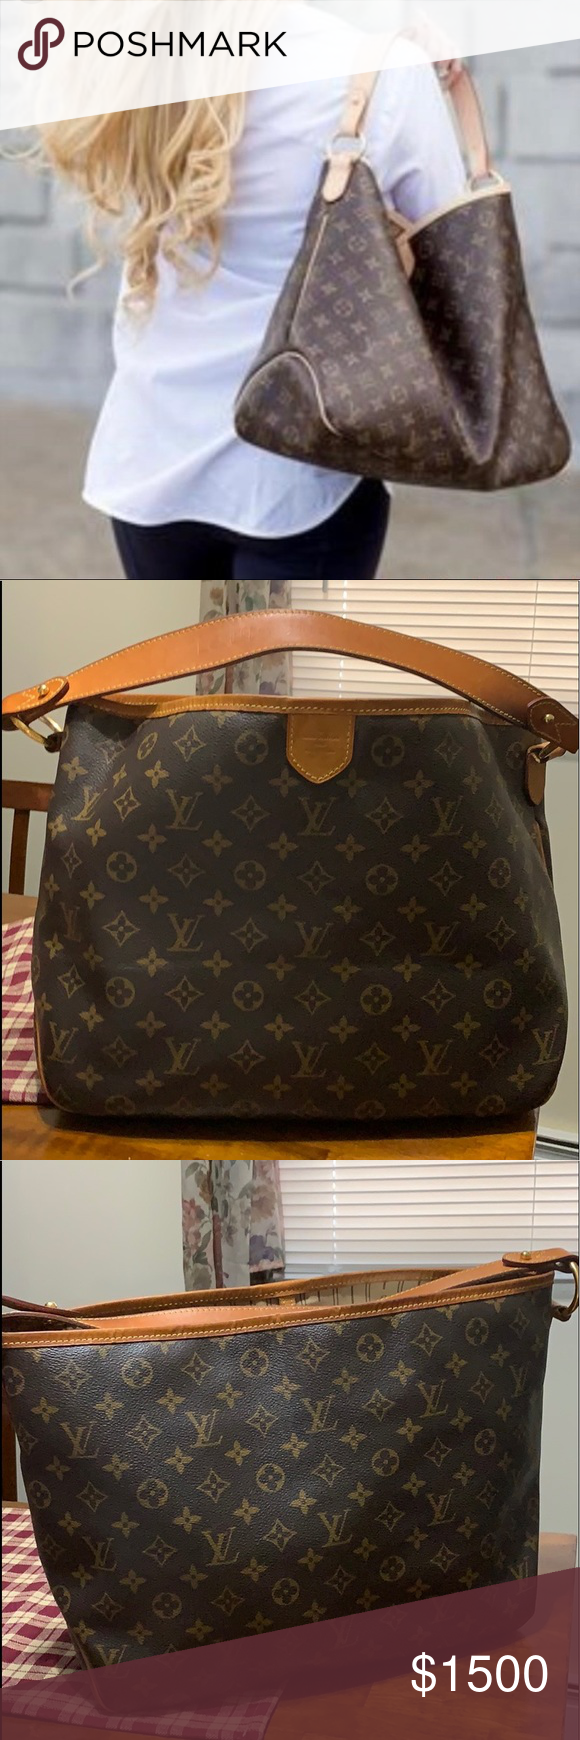 b58fa4ac9b5f Gorgeous gently used preloved 💯 % Authentic Louis Vuitton Delightful PM  monogram hobo bag